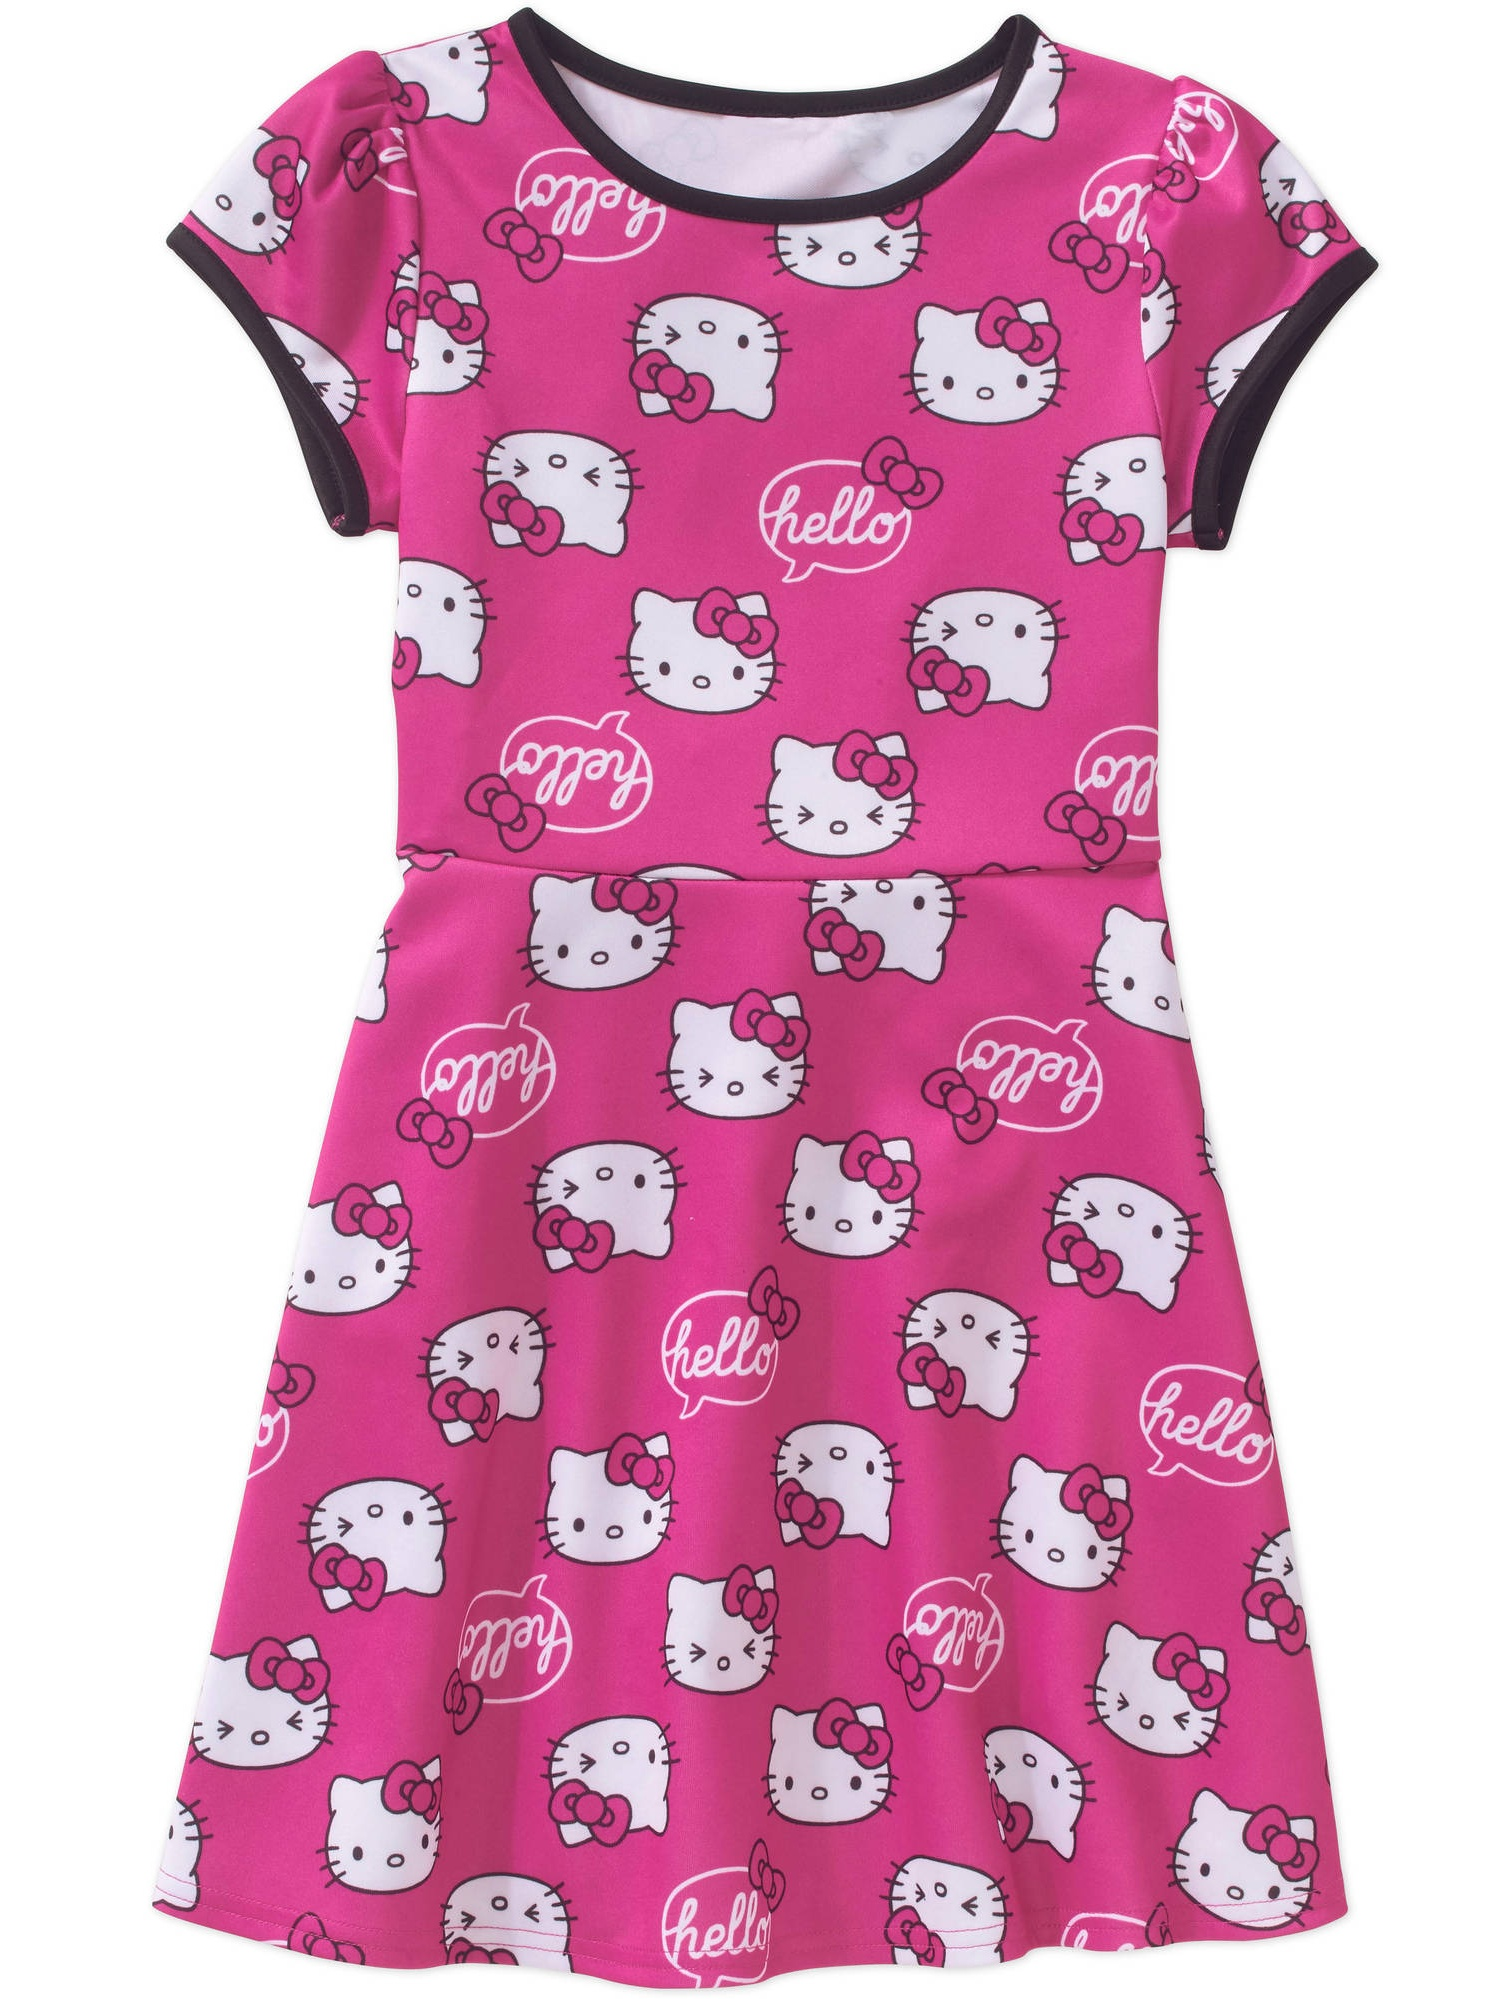 Girls Hk Expressions Scuba S/s Dress